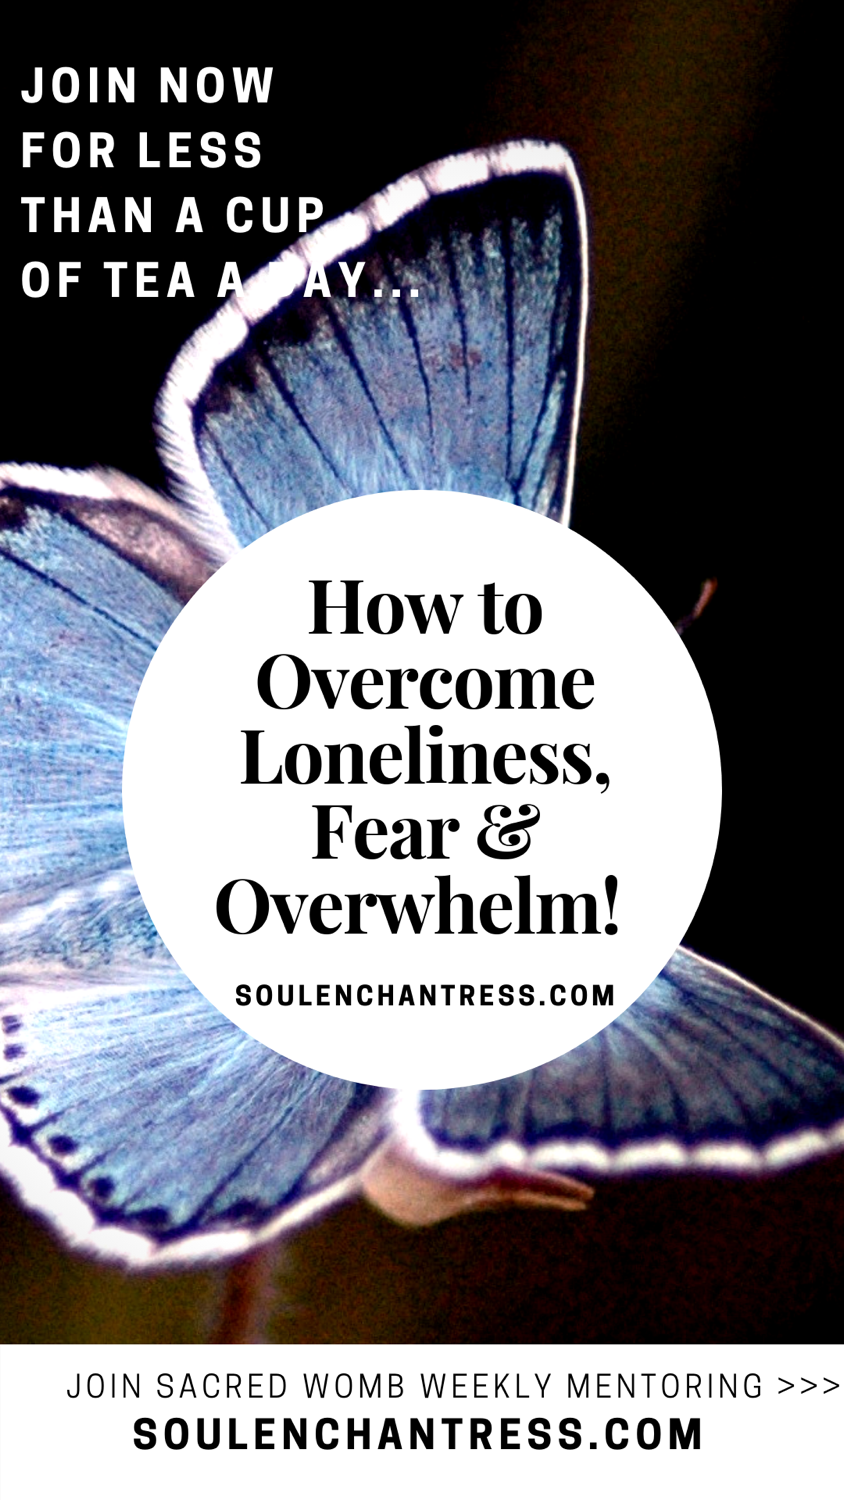 how to overcome loneliness, how to overcome fear, how to overcome overwhelm, soul enchantress, how to live a blissful life